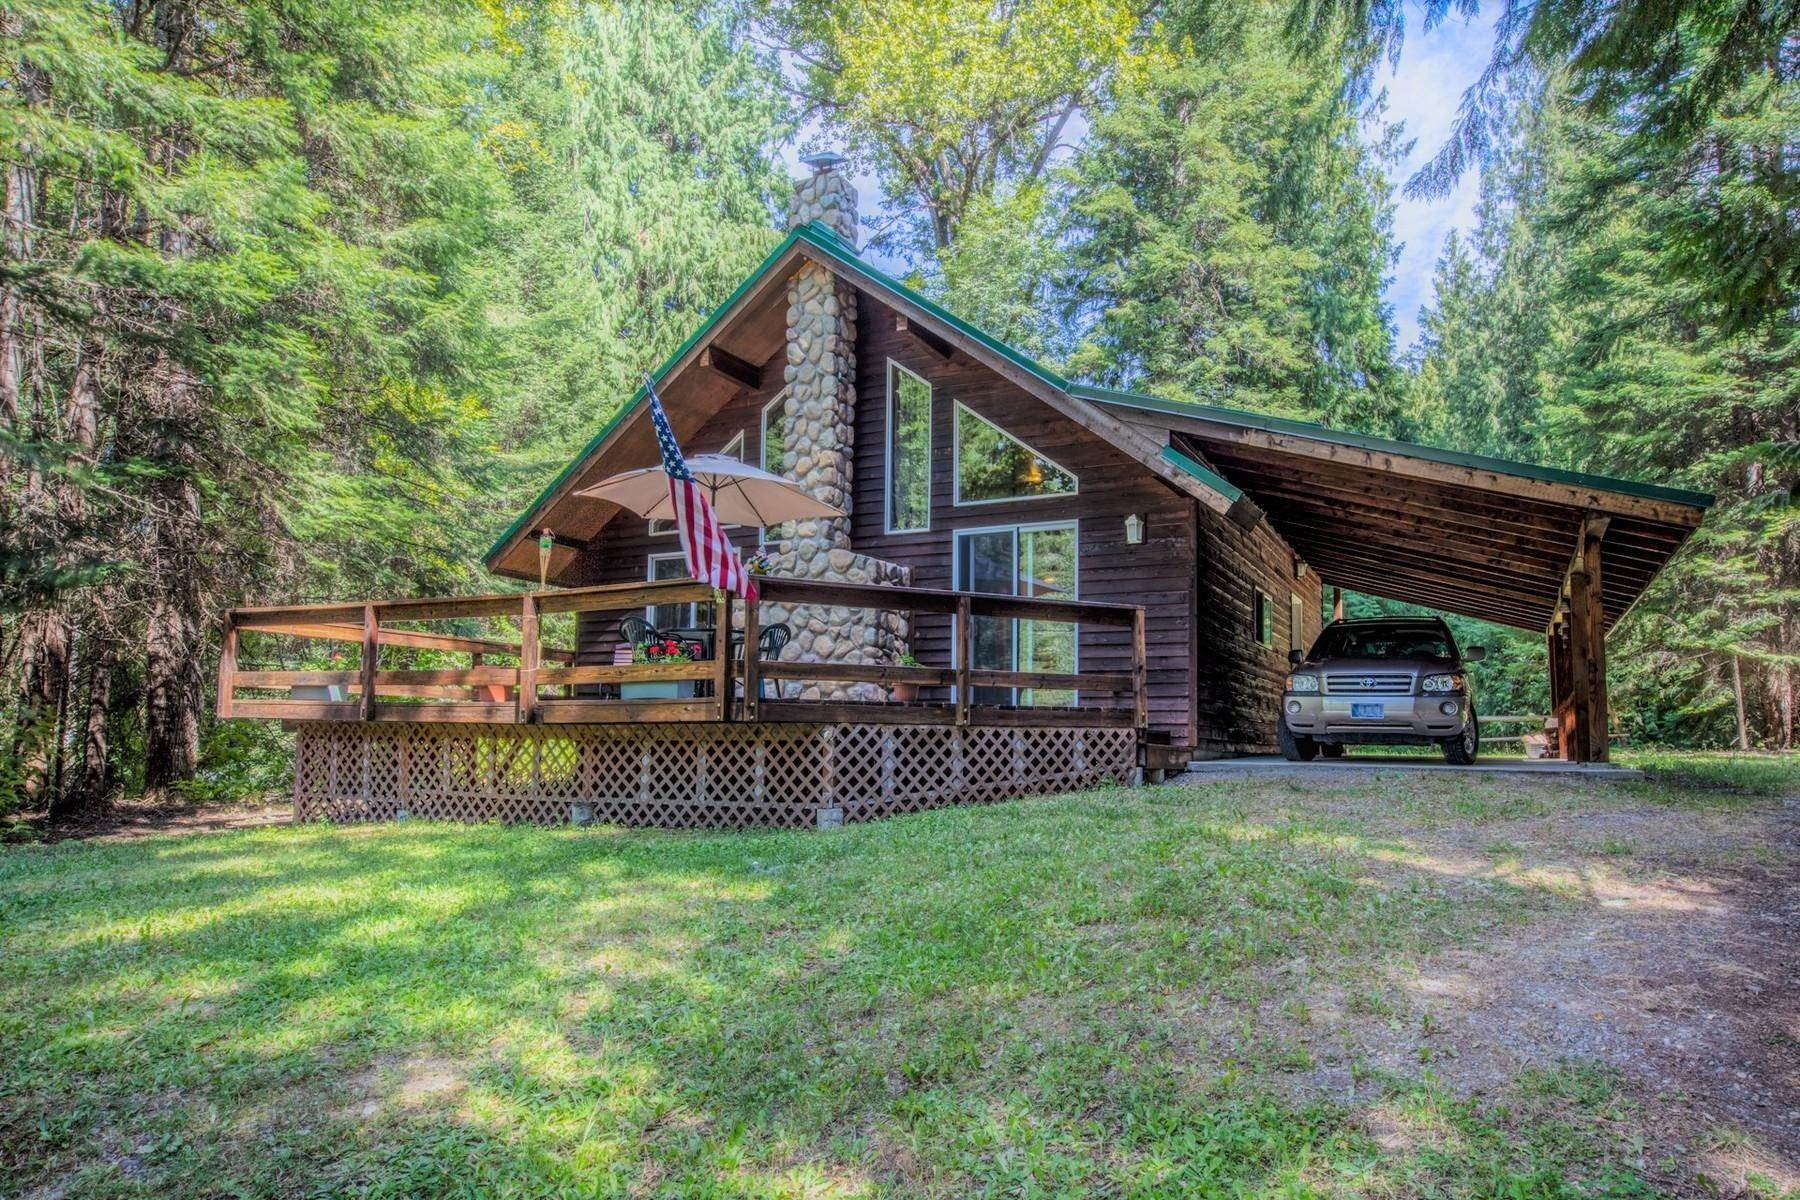 Single Family Homes for Sale at Bull Lake Home 14941 Bull Lake Road Troy, Montana 59935 United States